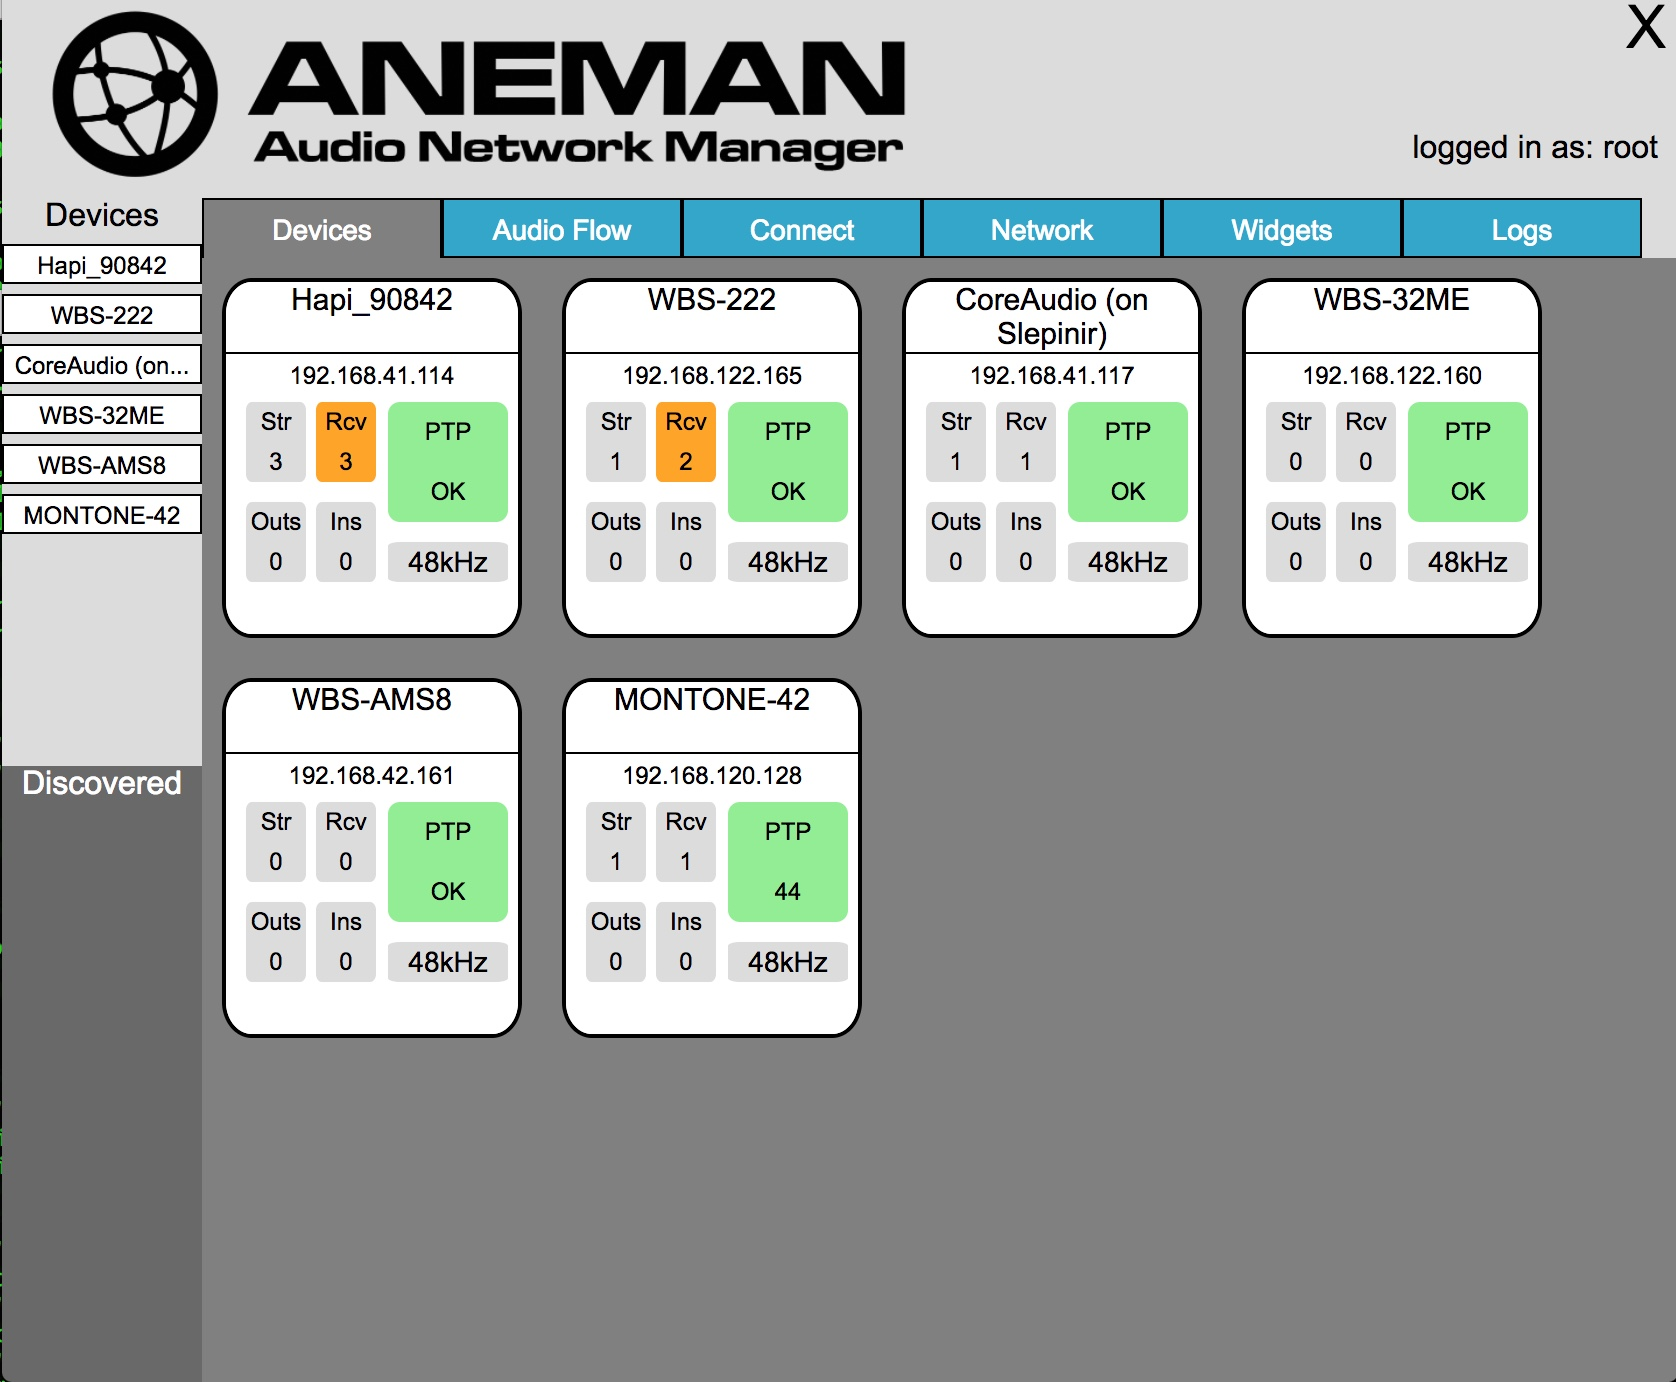 ANEMAN Audio Network Manager